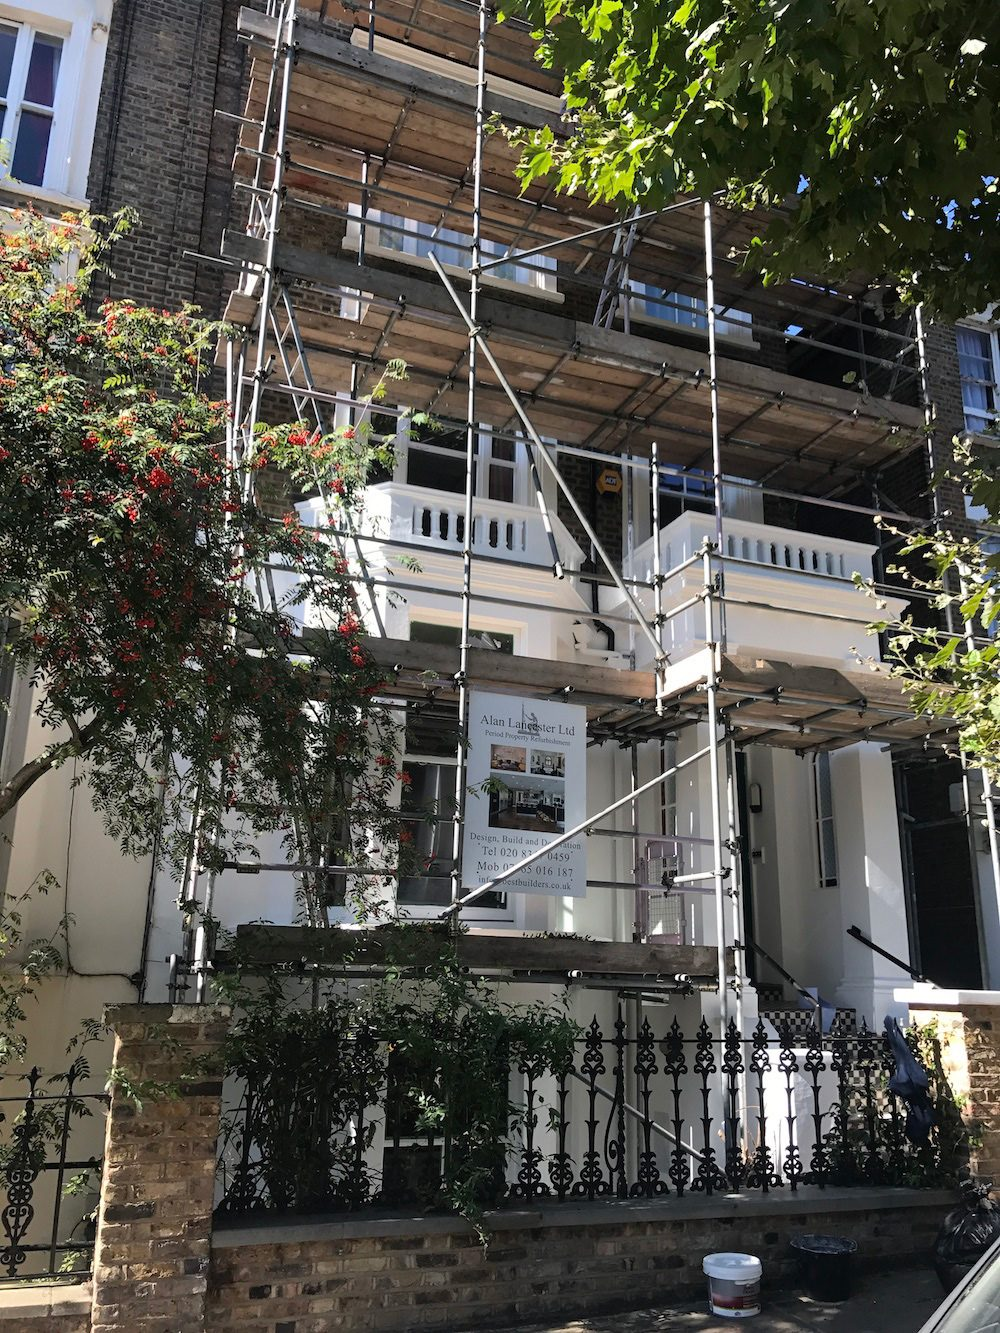 Sash Windows repairs and renovation service in North London